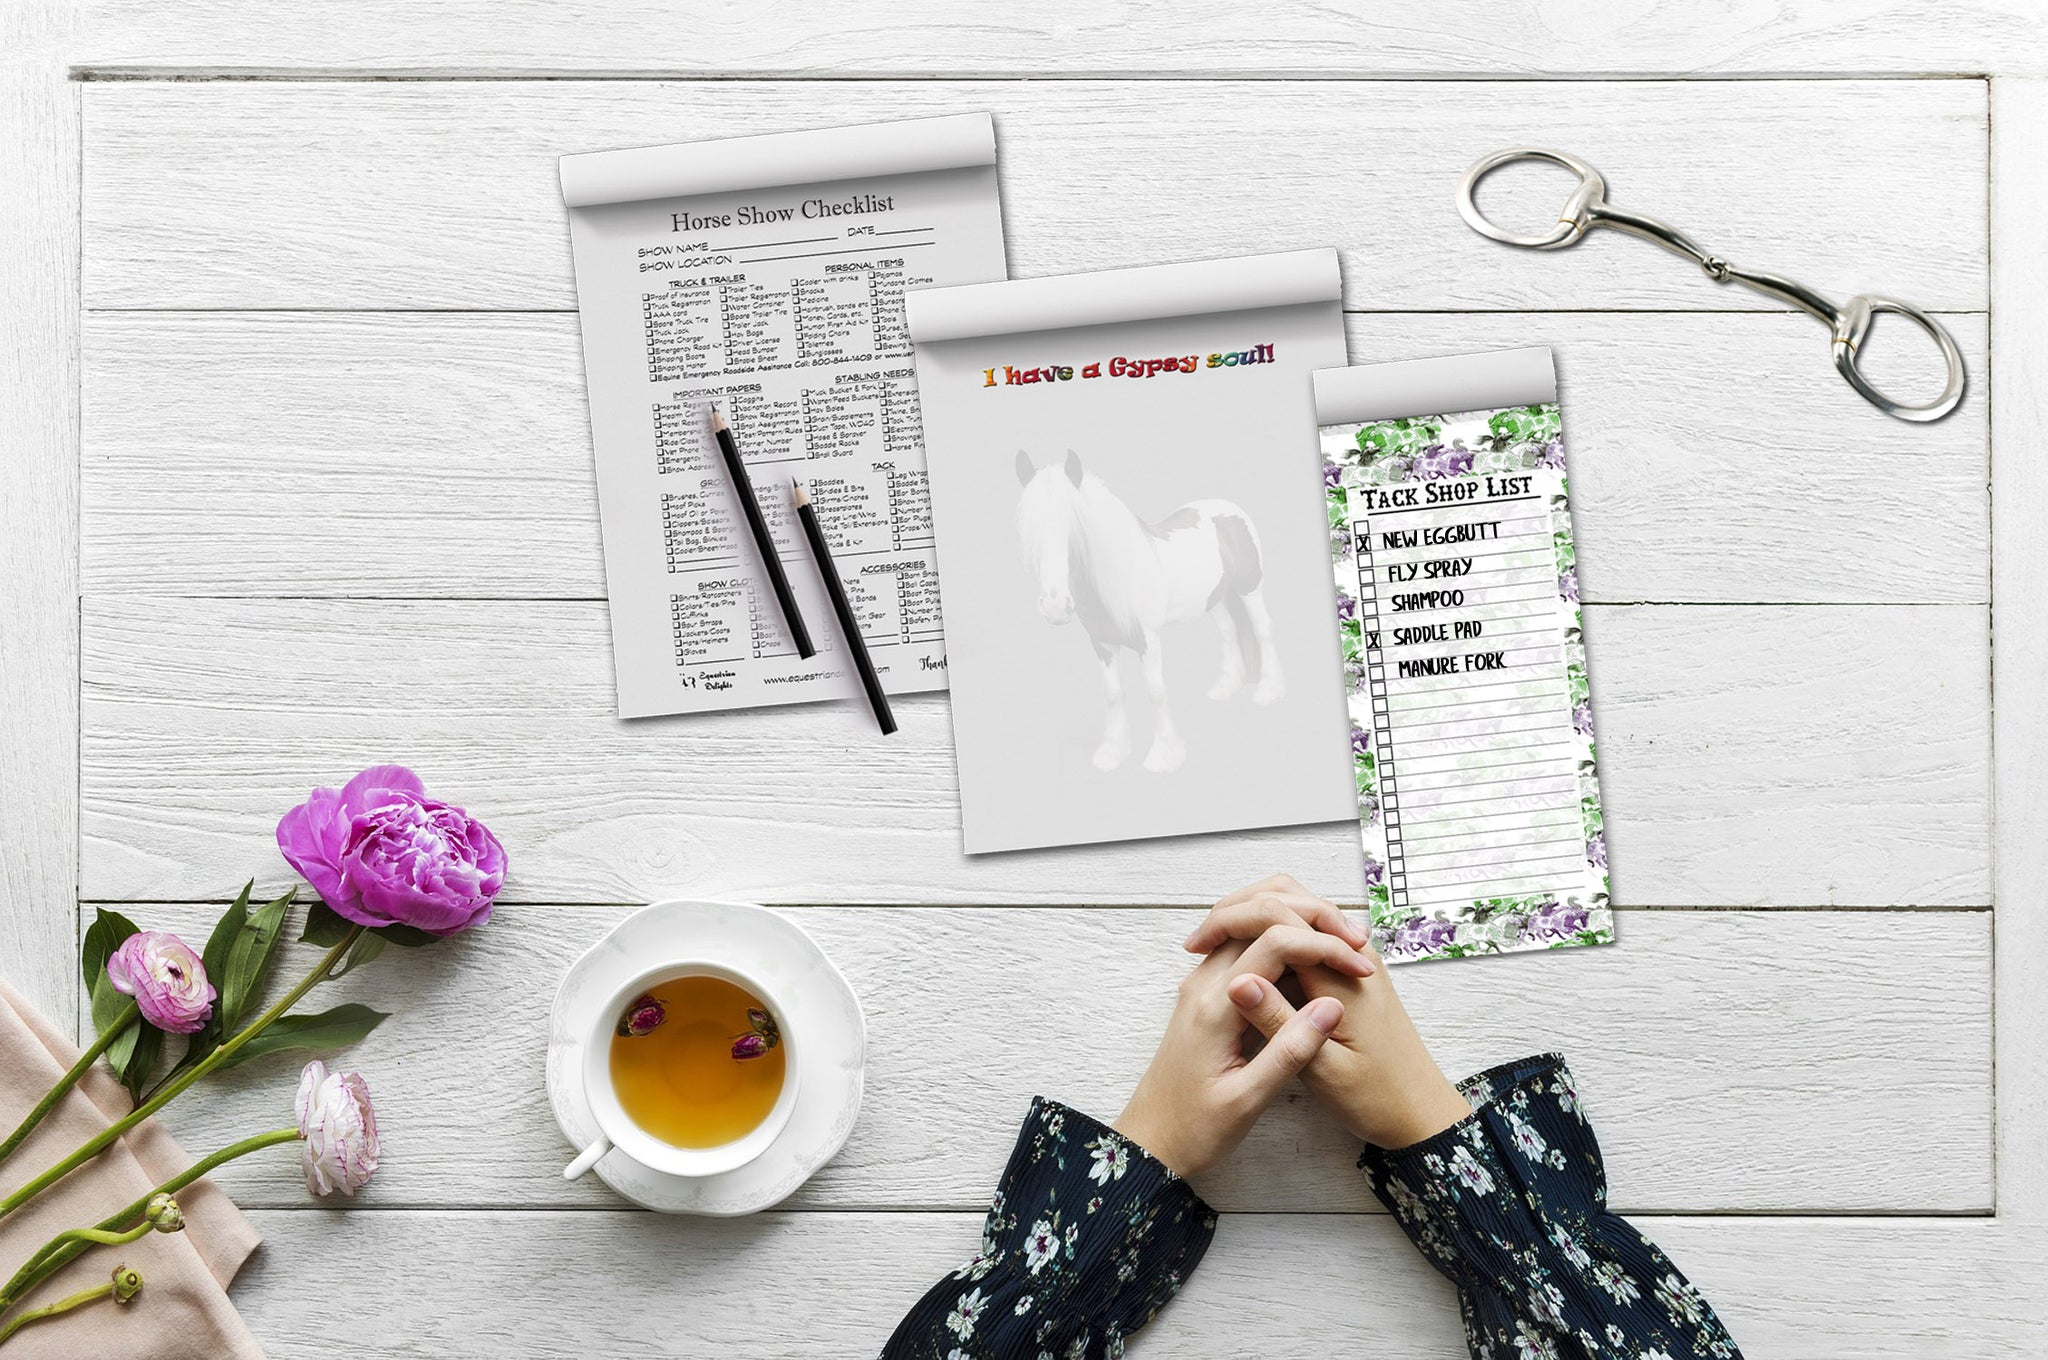 Tack Shop Scratchpad, Notepads for Horse Lovers, Equestrian Supplies Tack Shop List